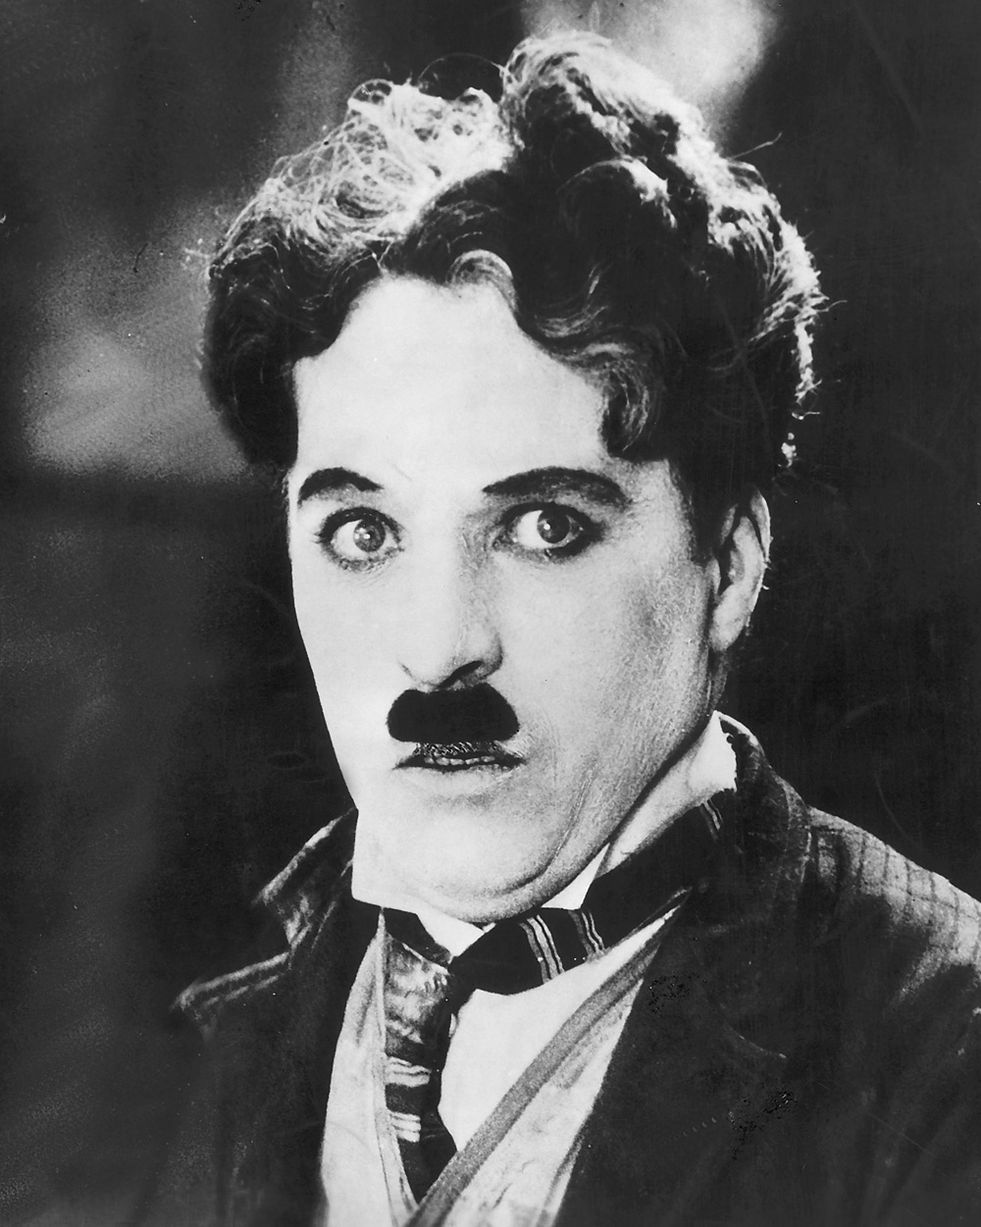 Charlie Chaplin with his legendary 'toothbrush mustache'.